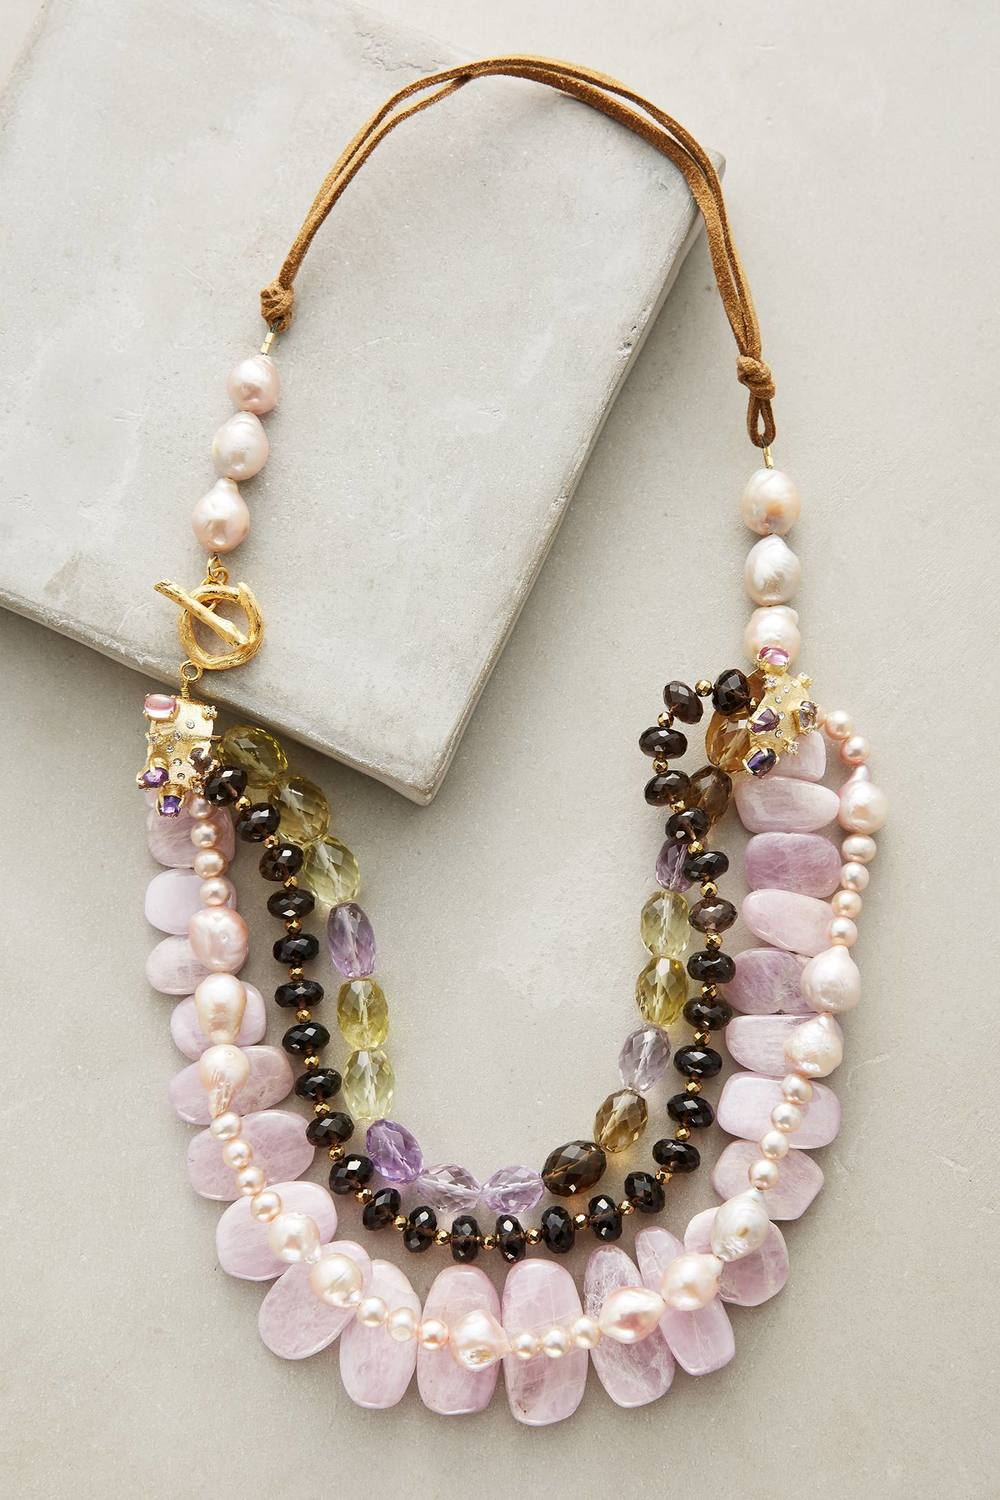 Vezzoso Necklace. Anthropologie. $348.